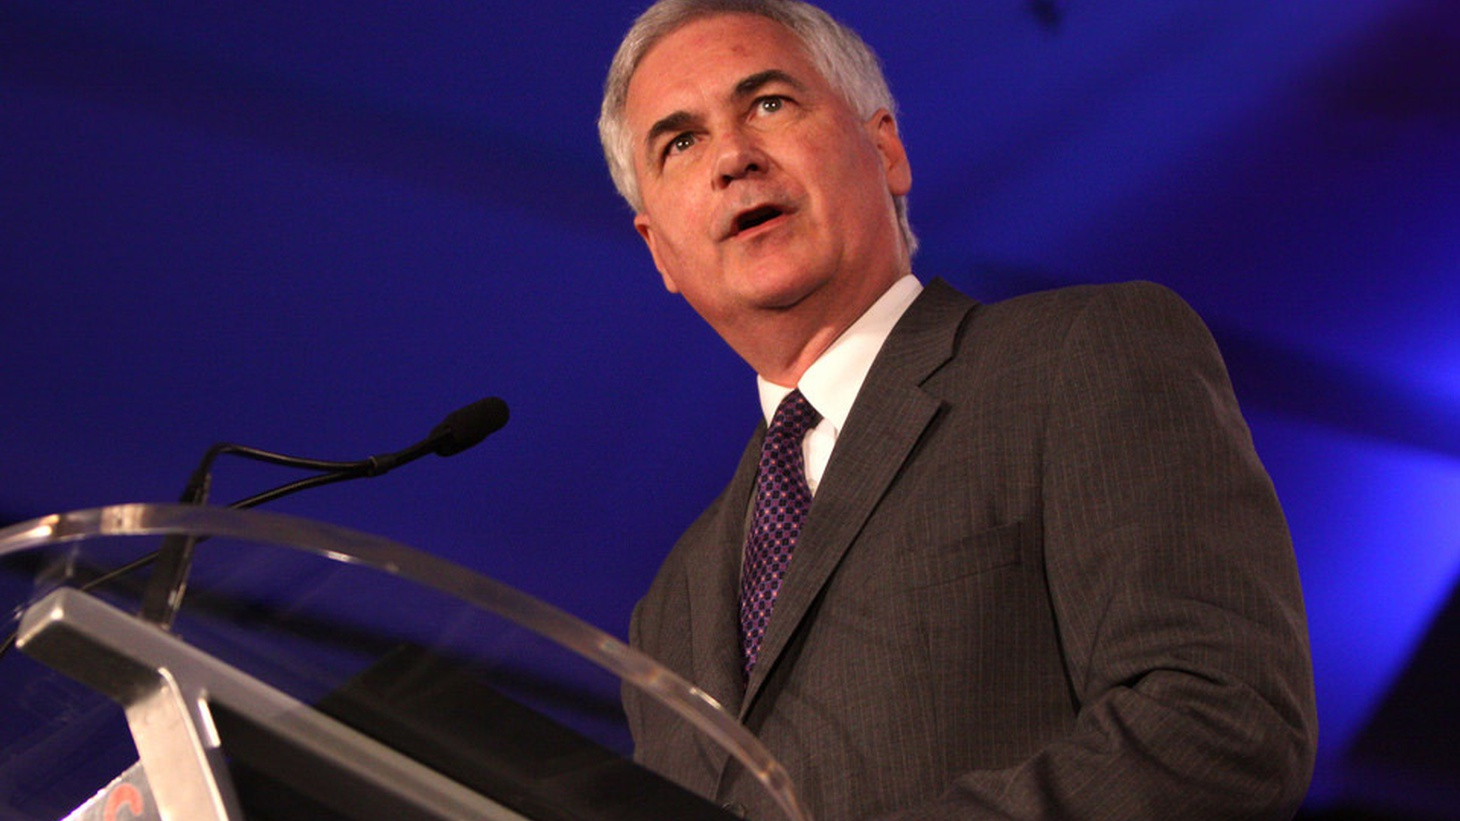 KCRW's Larry Perel chats with California GOP Rep. Tom McClintock about why he voted against his party's tax plan.